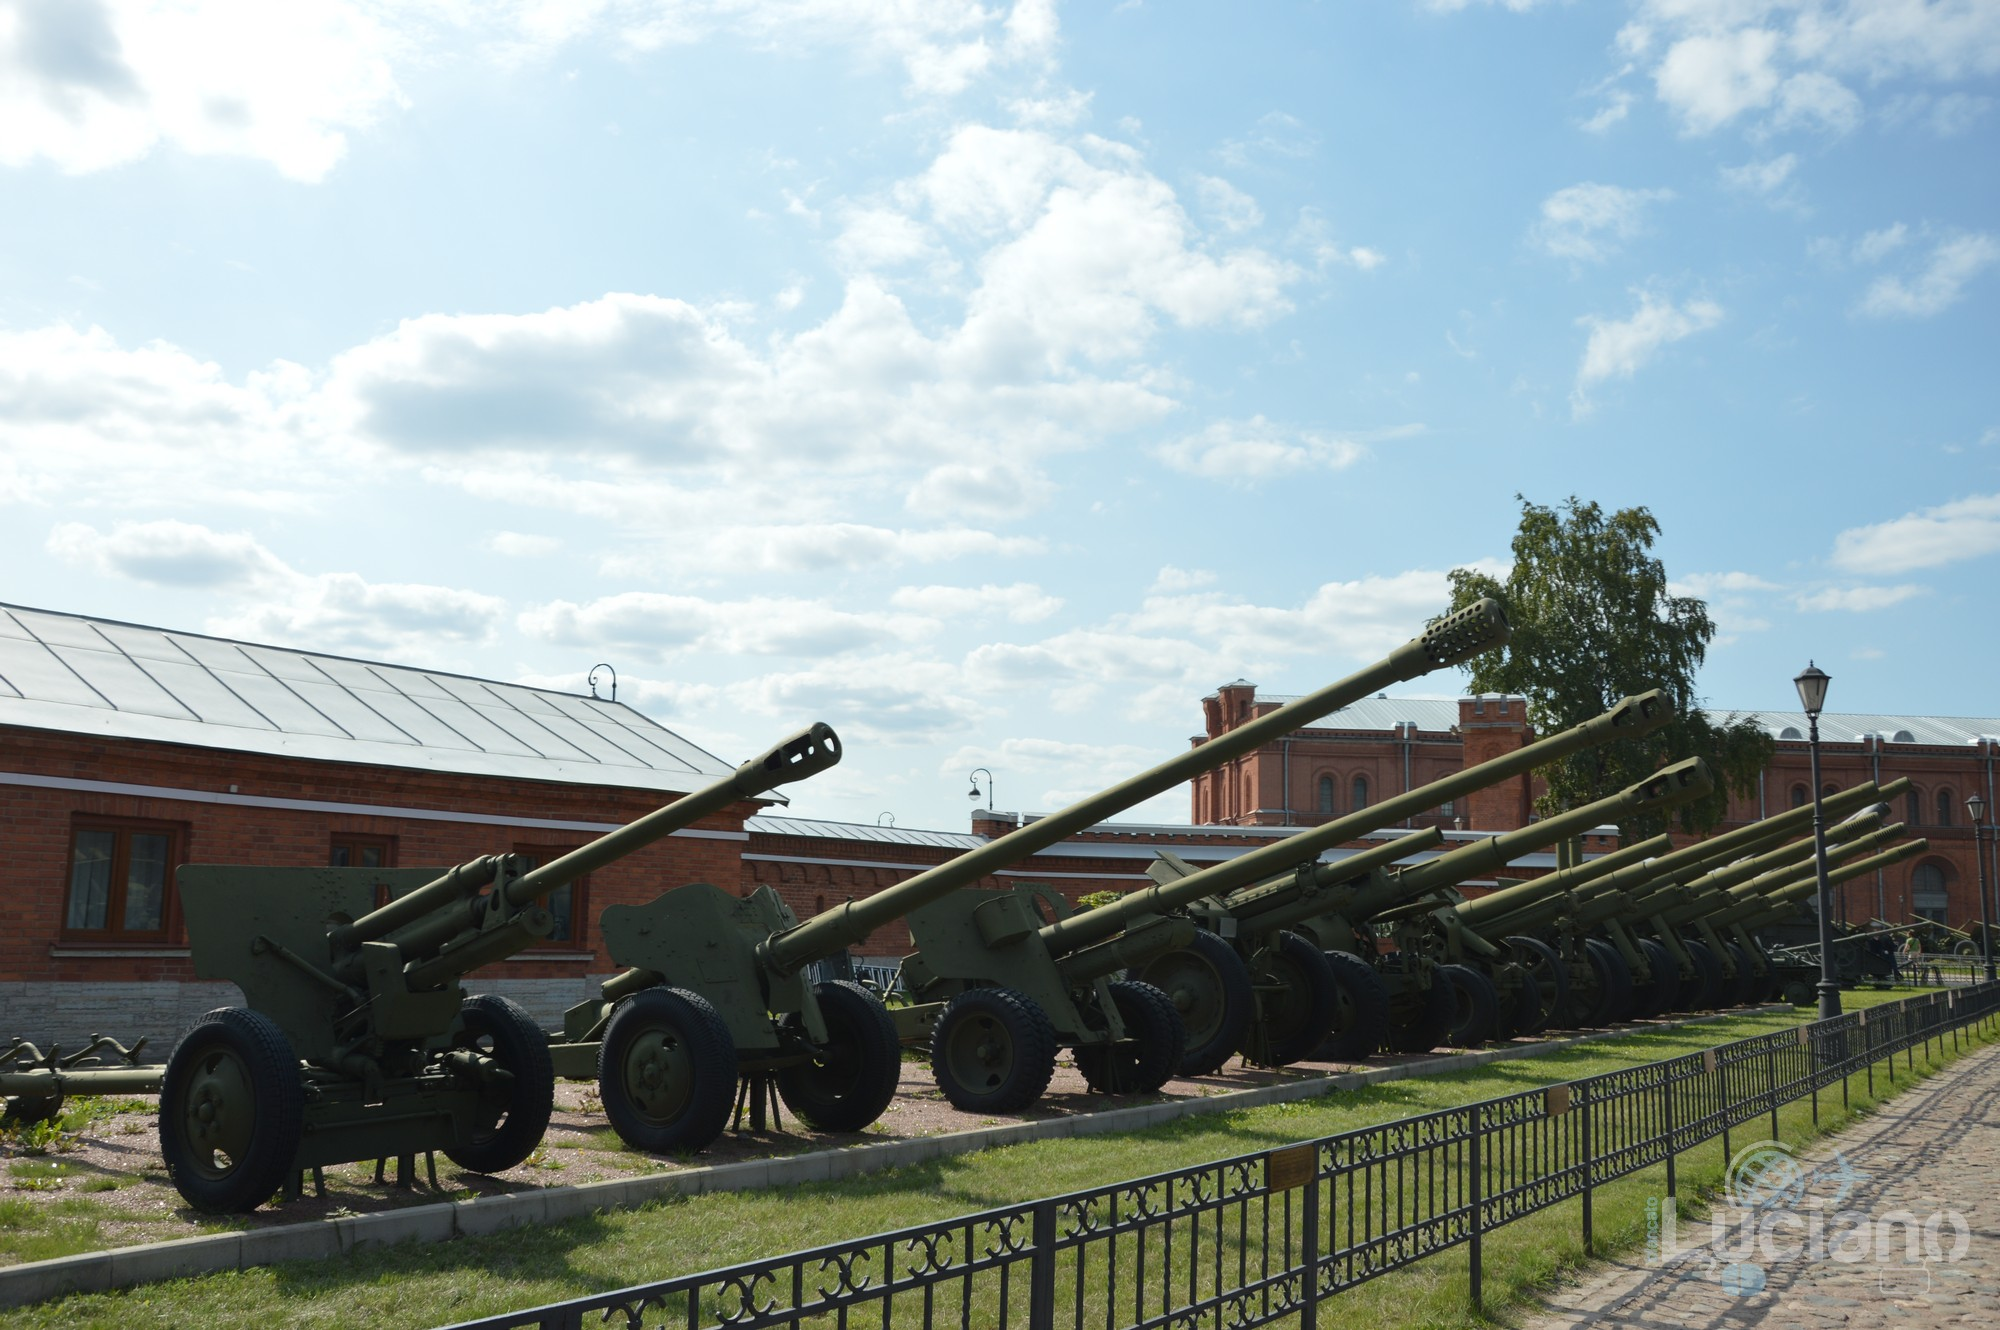 Military-Historical-Museum-of-Artillery-Engineer-and-Signal-Corps-St-Petersburg-Russia-Luciano-Blancato- (23)